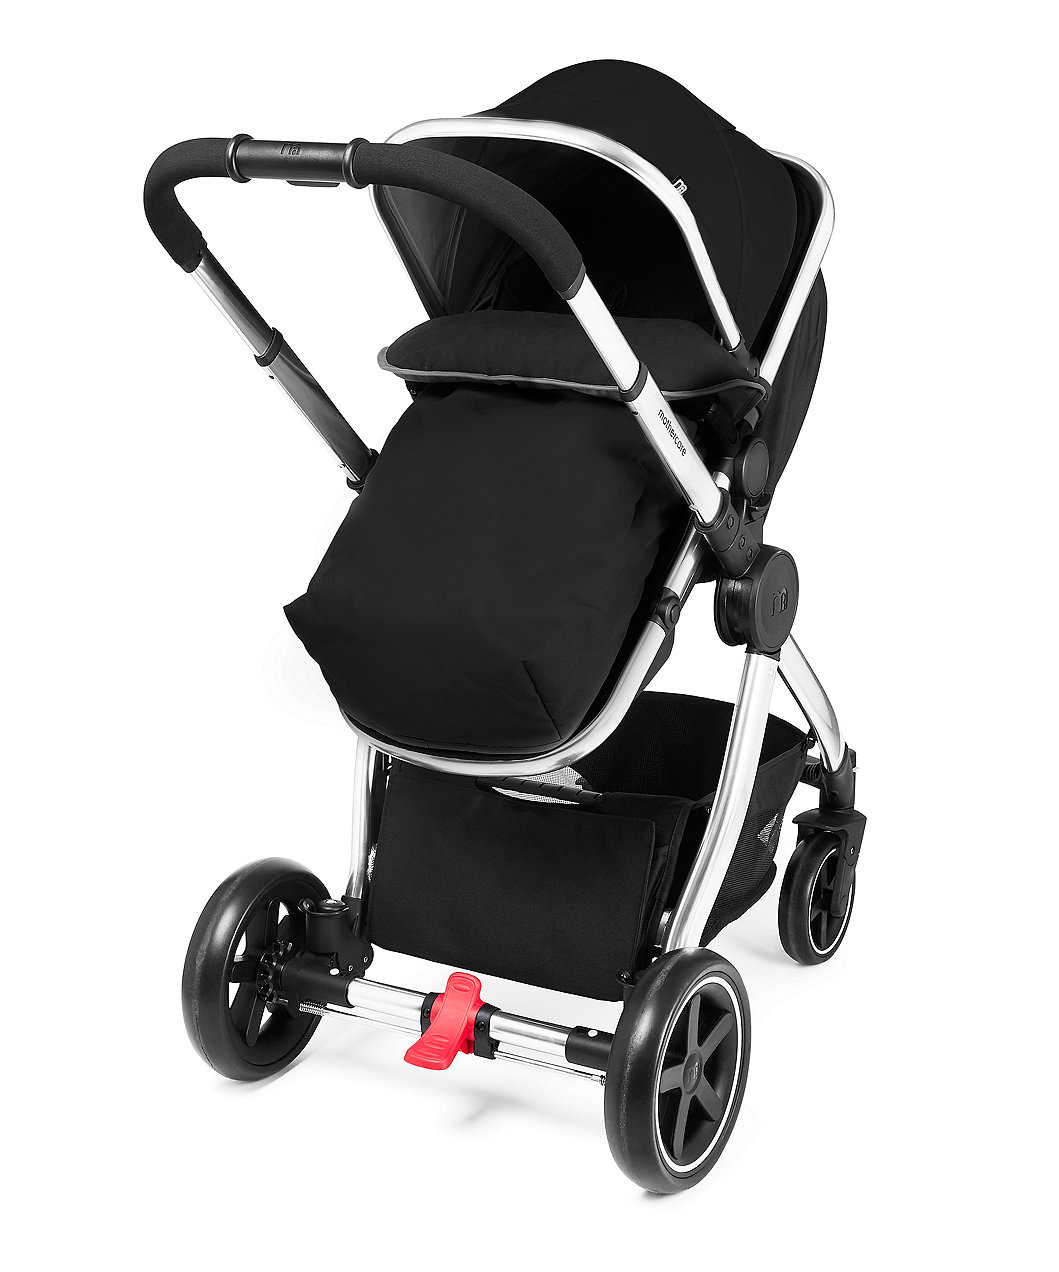 Mothercare My Travel System Review